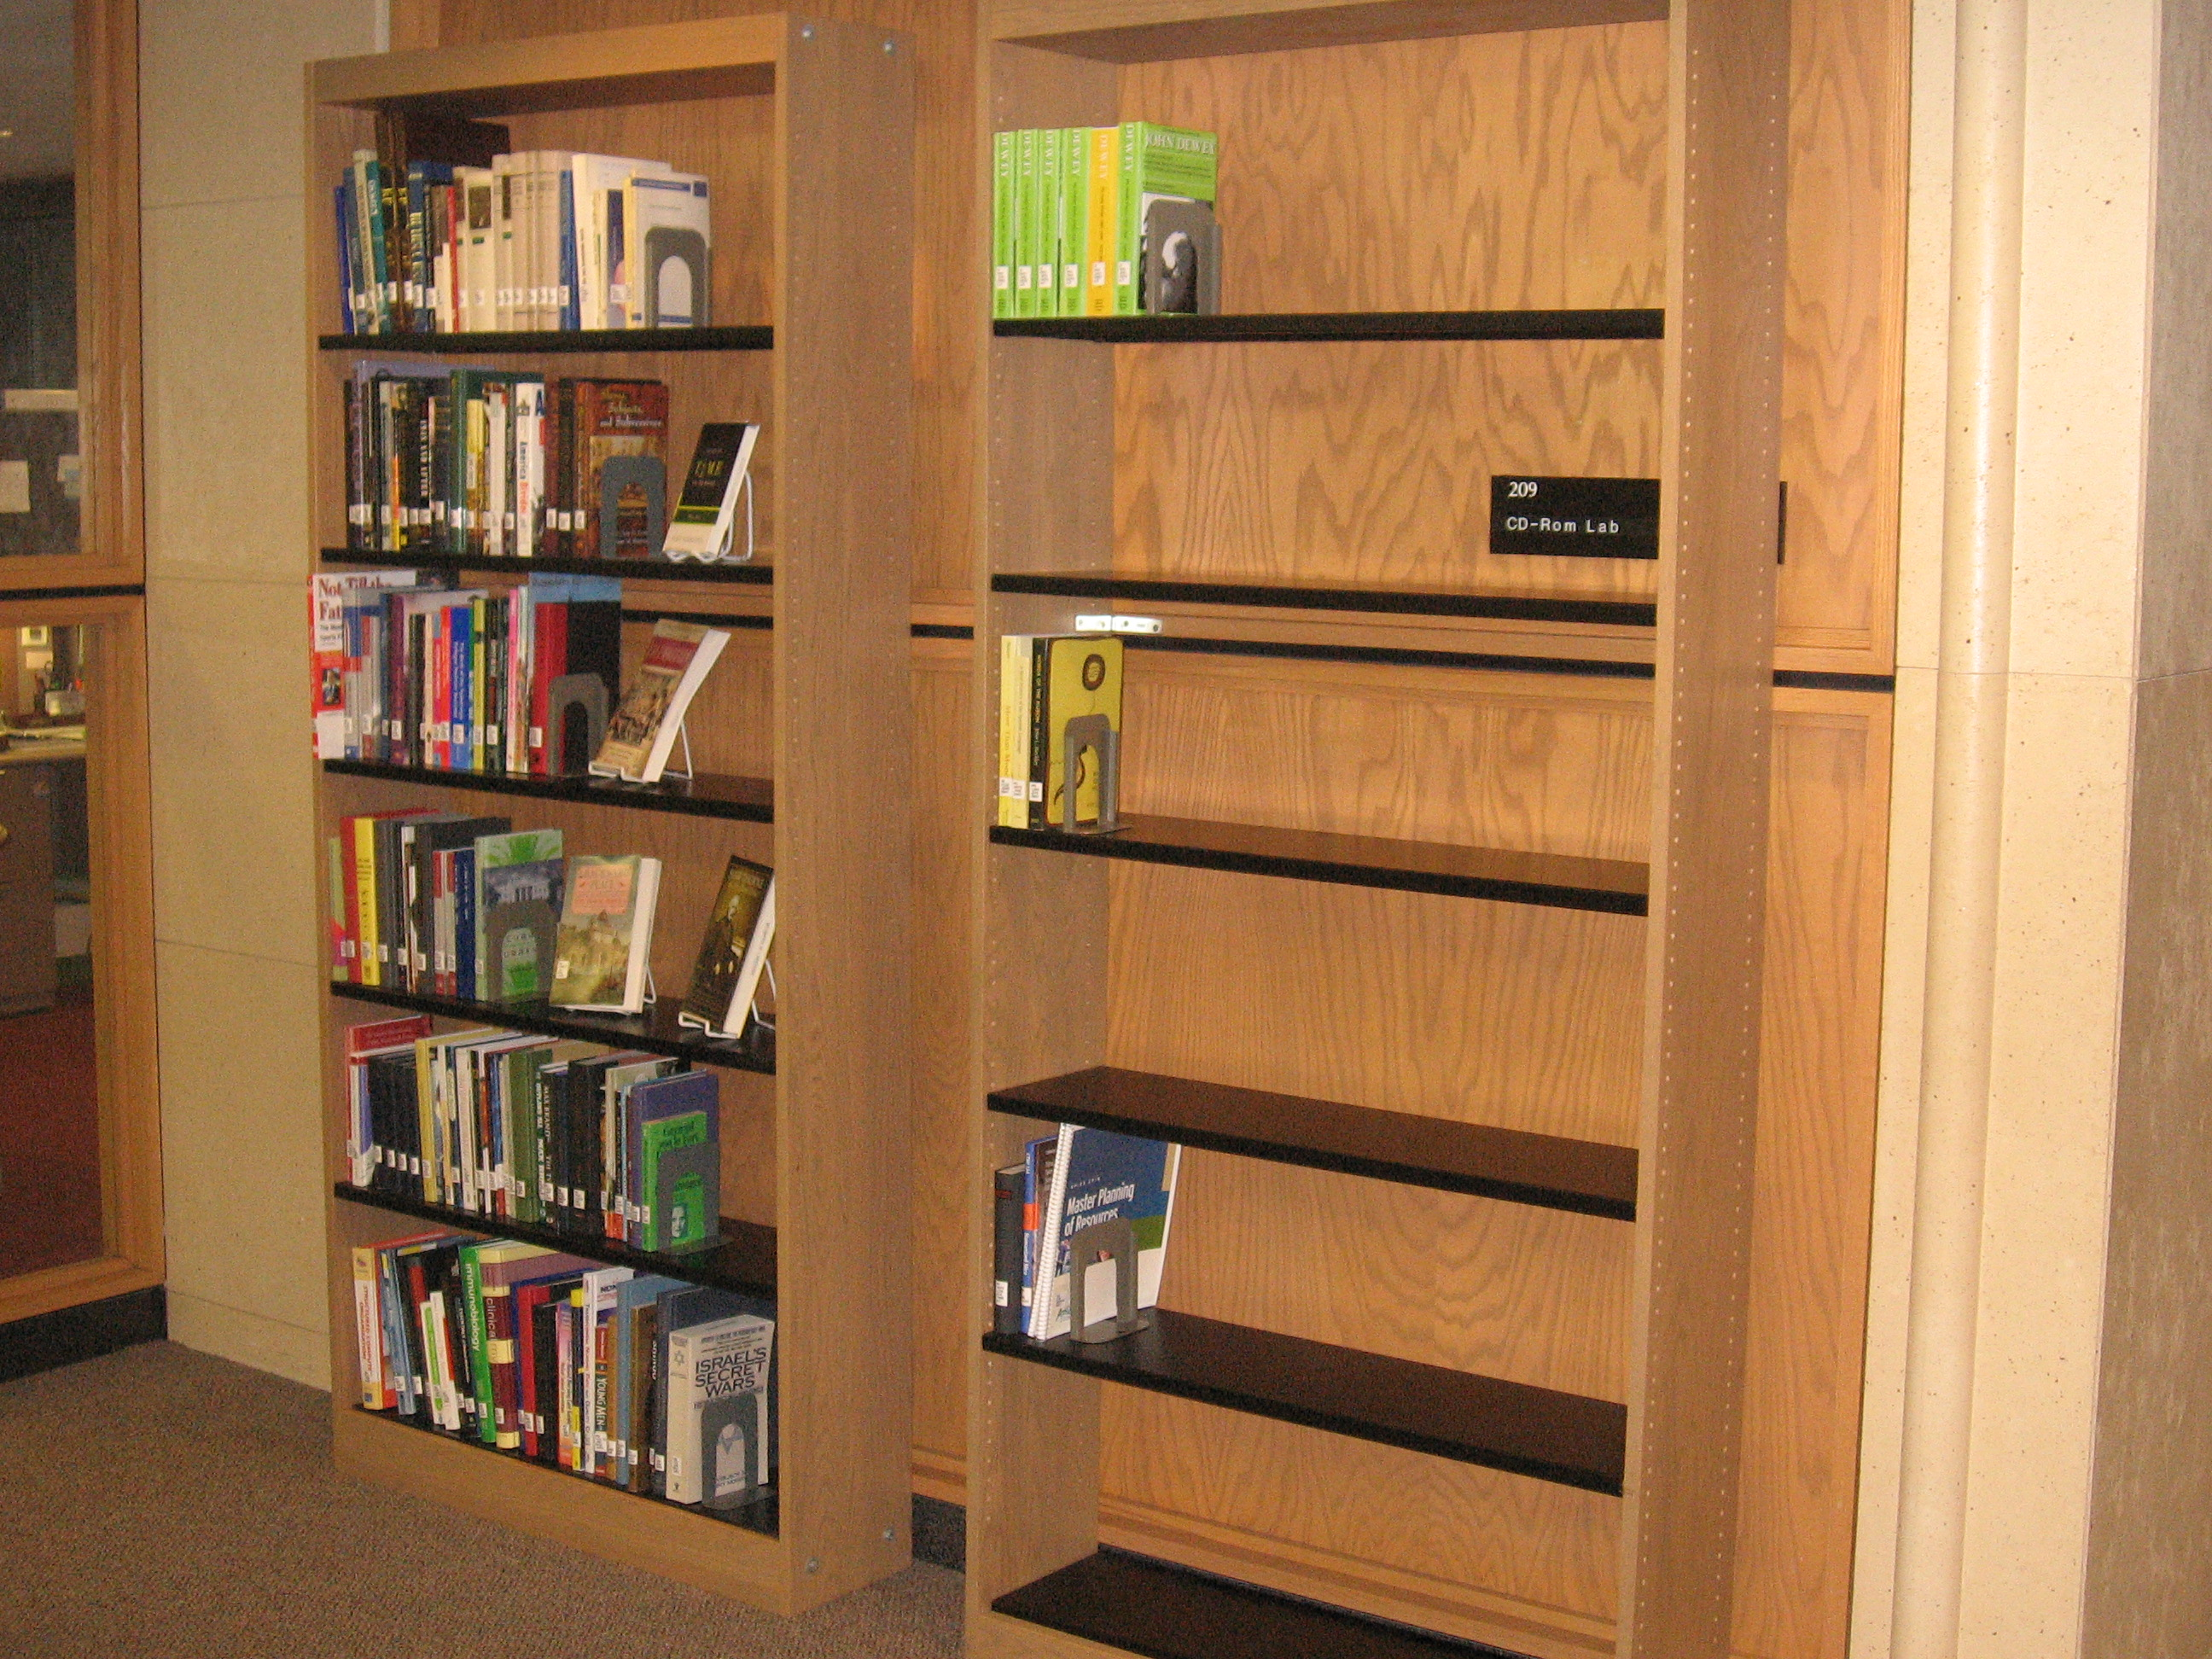 Here are our new shelves.